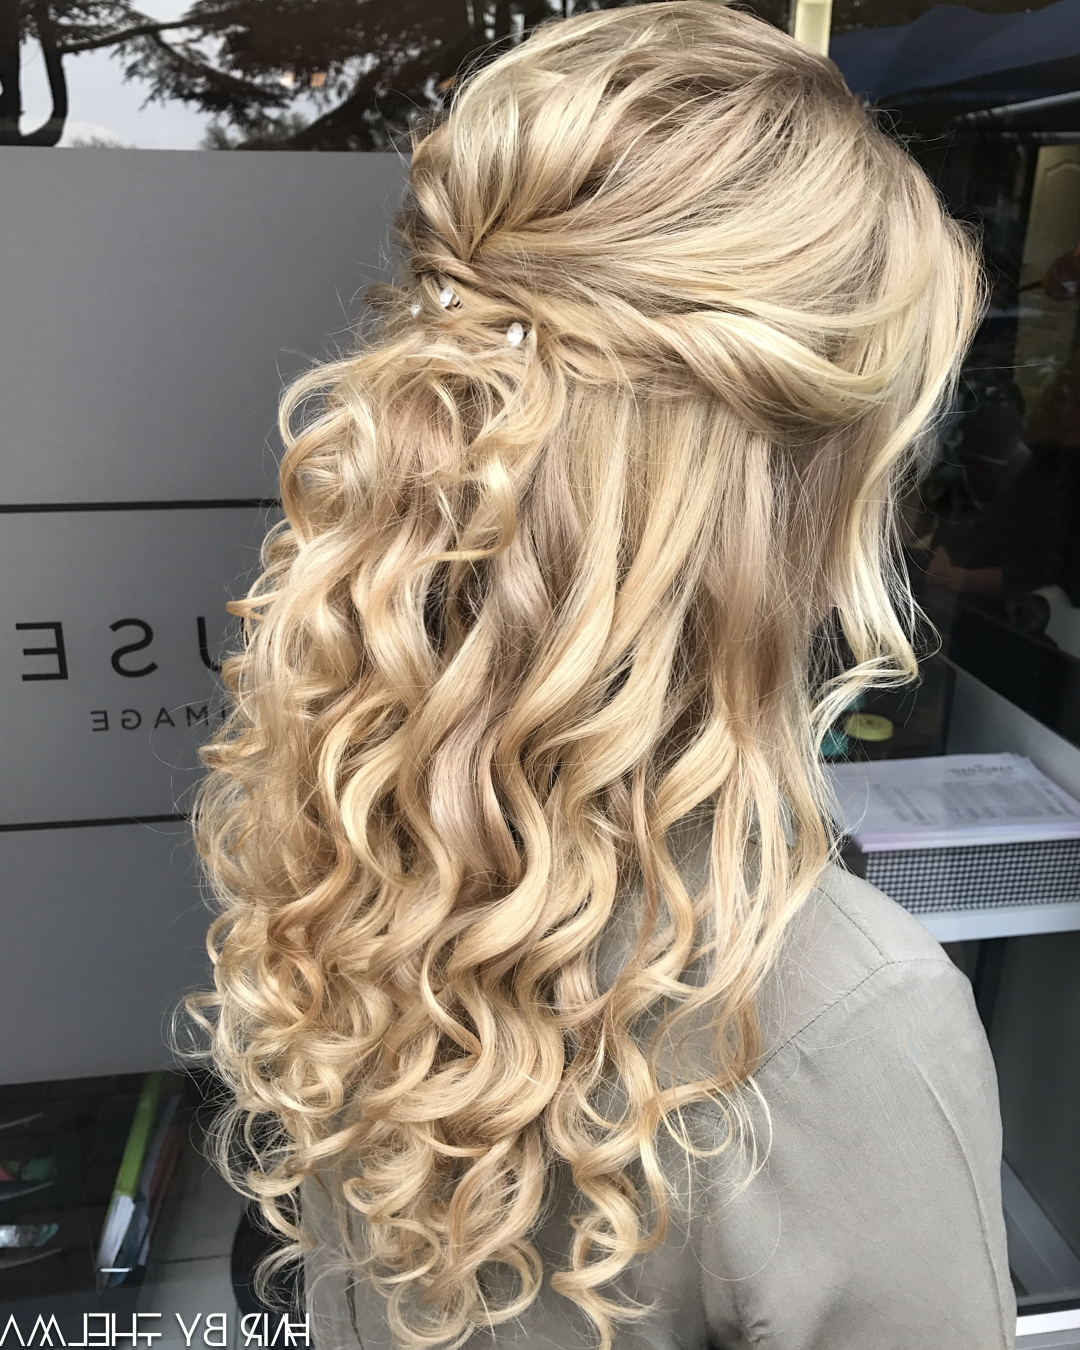 Half Up Half Down, Prom Hairstyles, Matric Dance, Diamanté Decor Pertaining To Preferred Half Updo Blonde Hairstyles With Bouffant For Thick Hair (View 12 of 20)